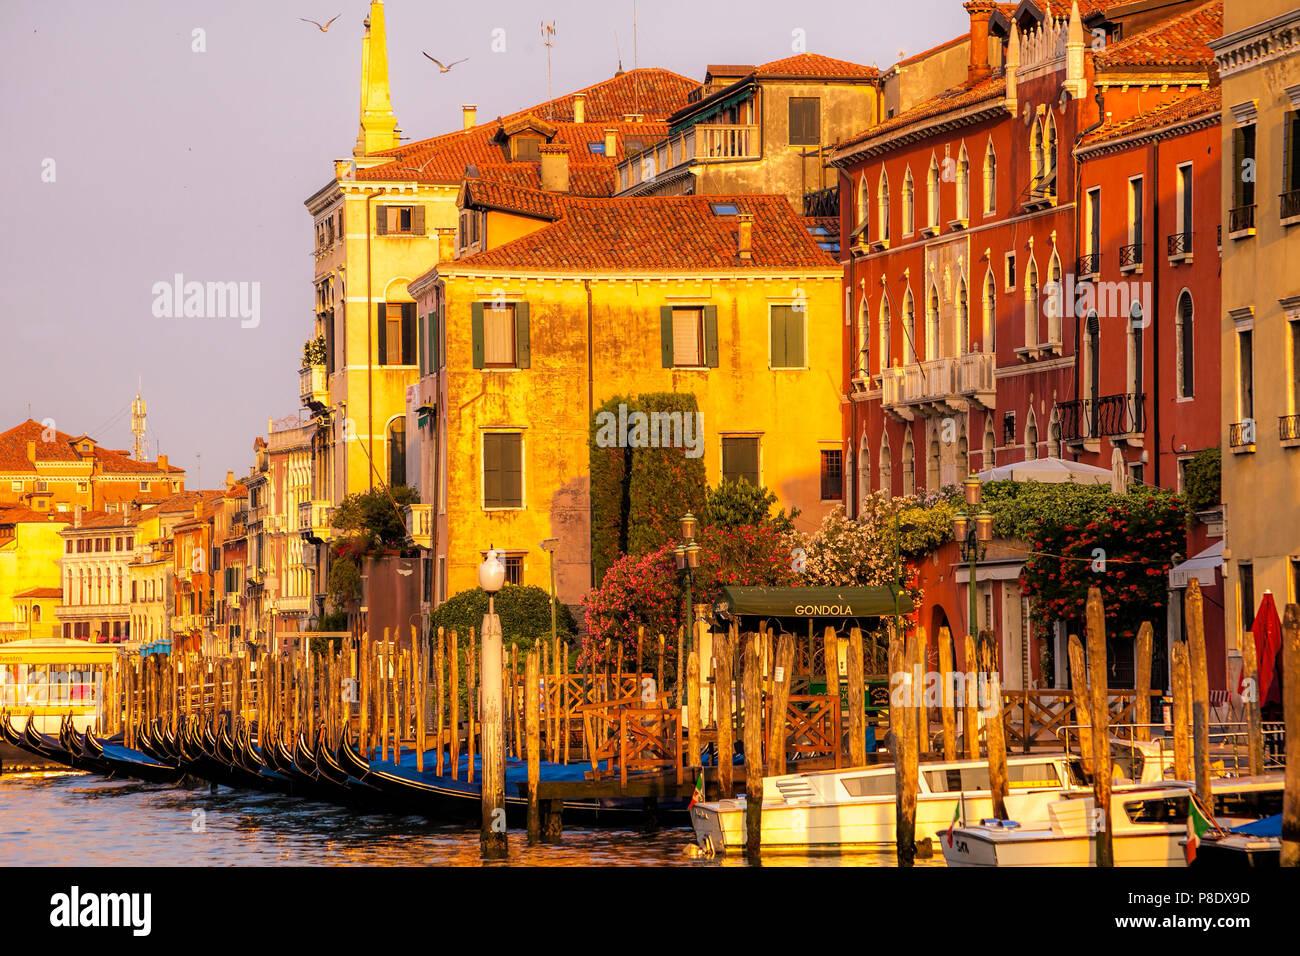 Venice, Italy warmed by the morning light - Stock Image